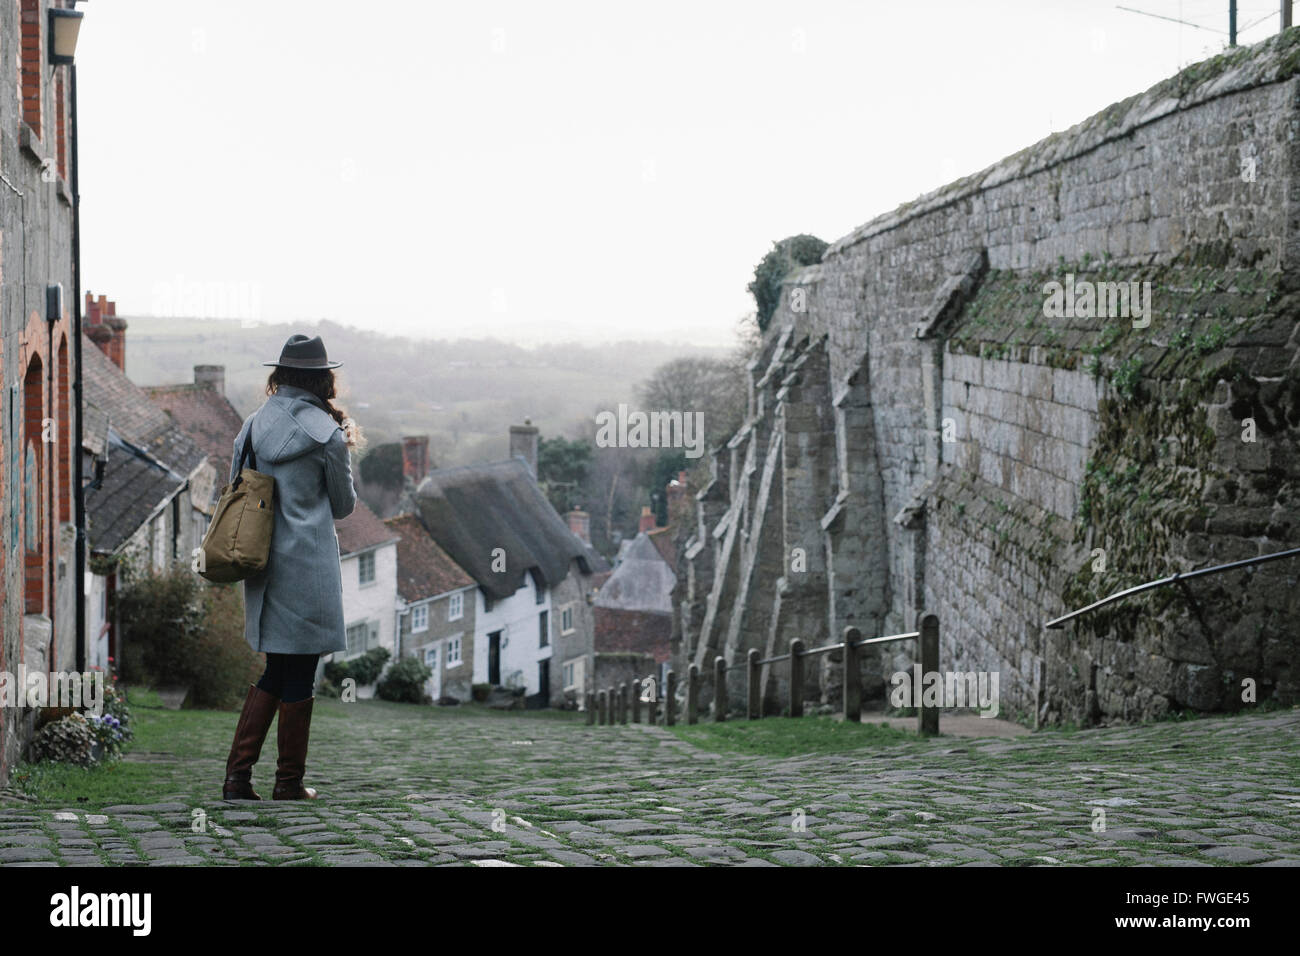 A woman at the top of Gold Hill, a steep cobbled street in Shaftesbury. - Stock Image